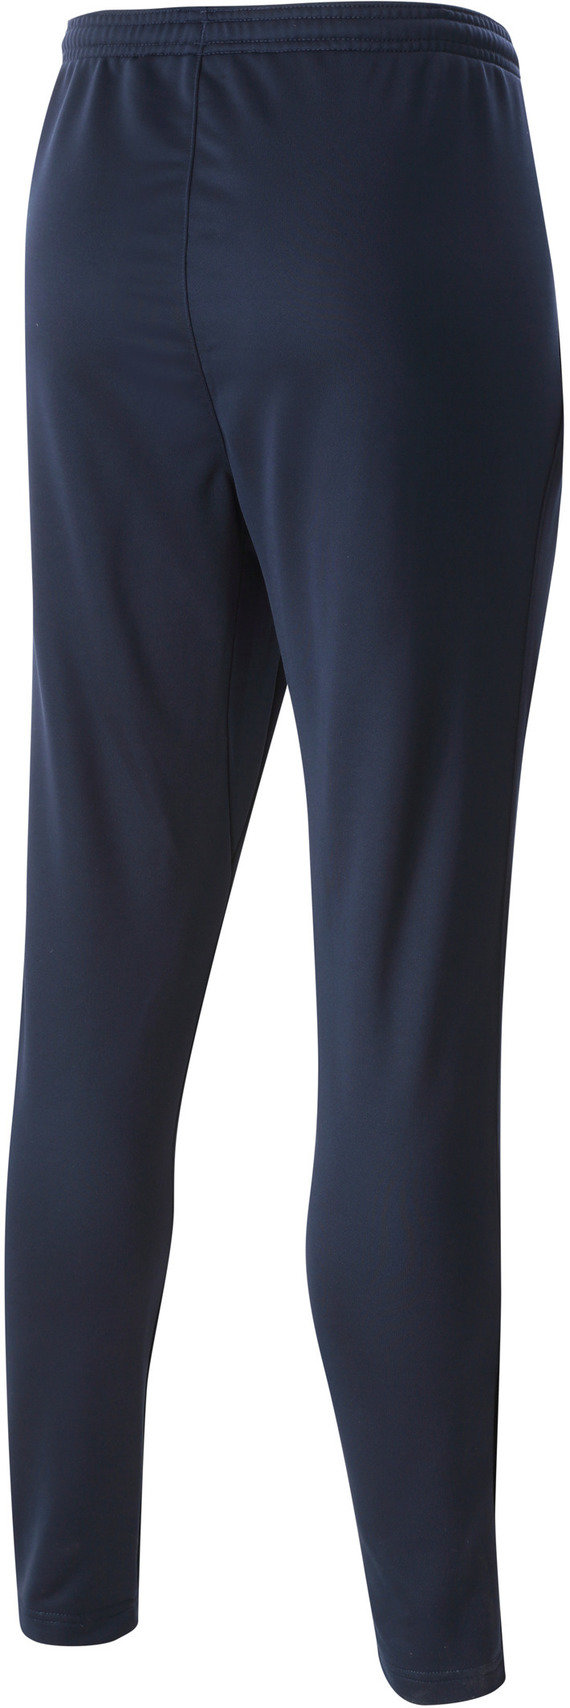 TAPERED TRAINING PANT